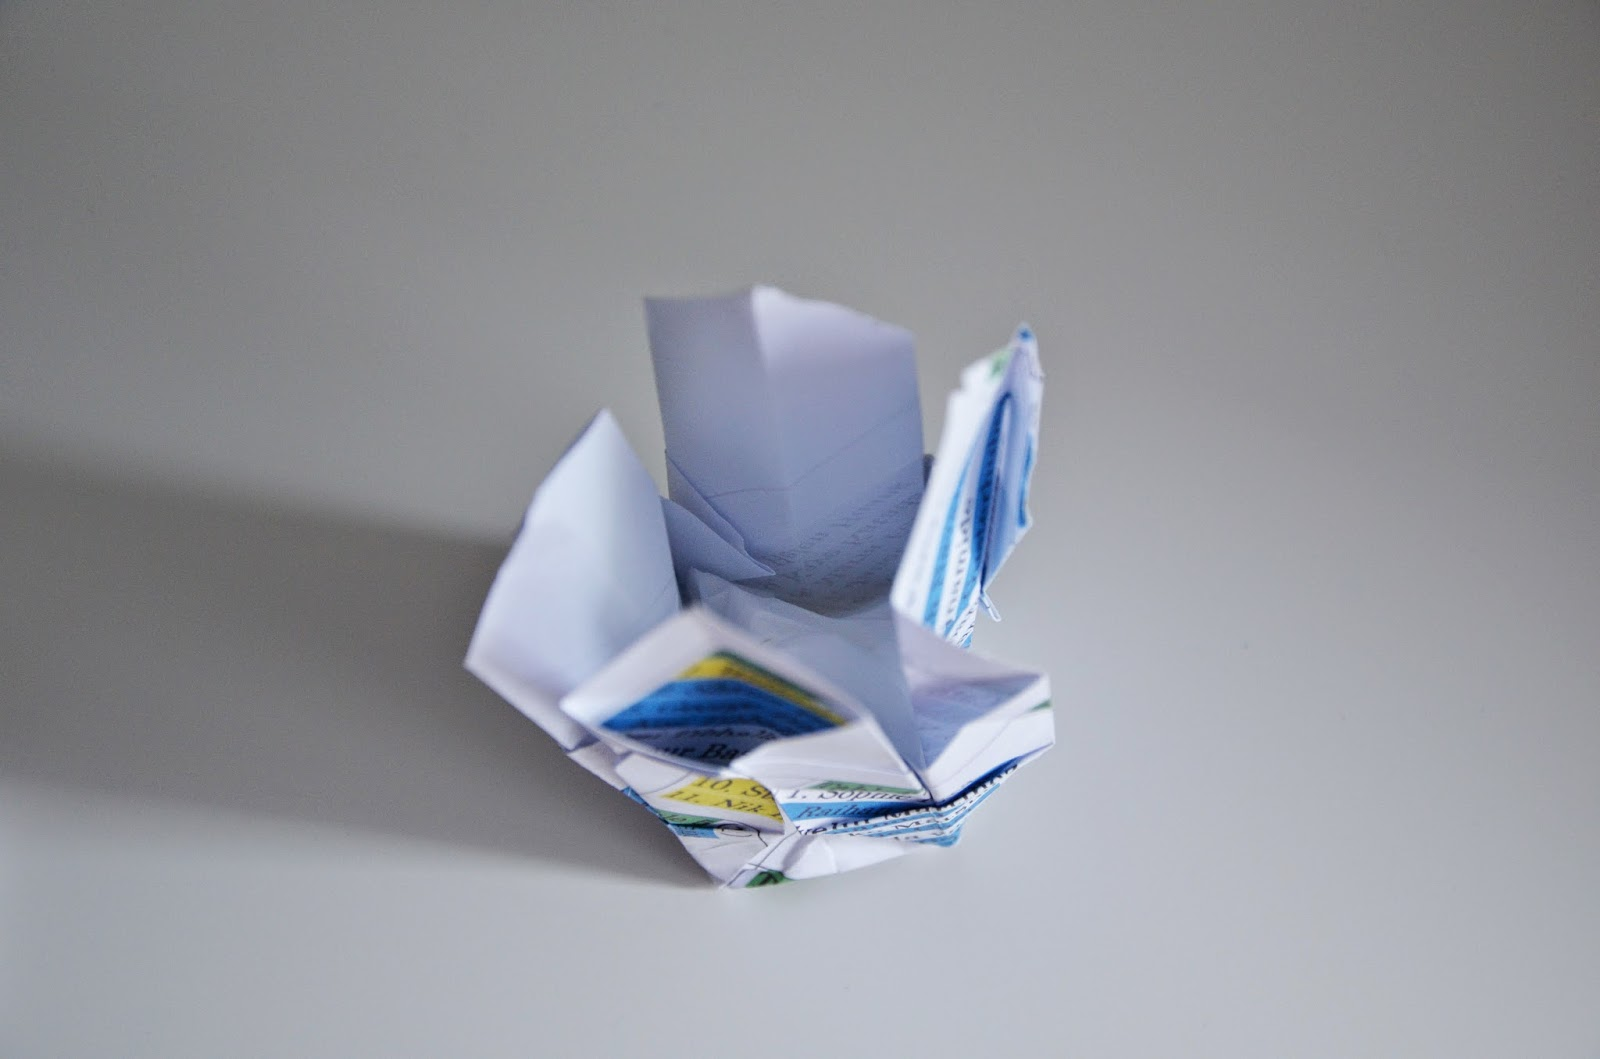 Origami toy for kids